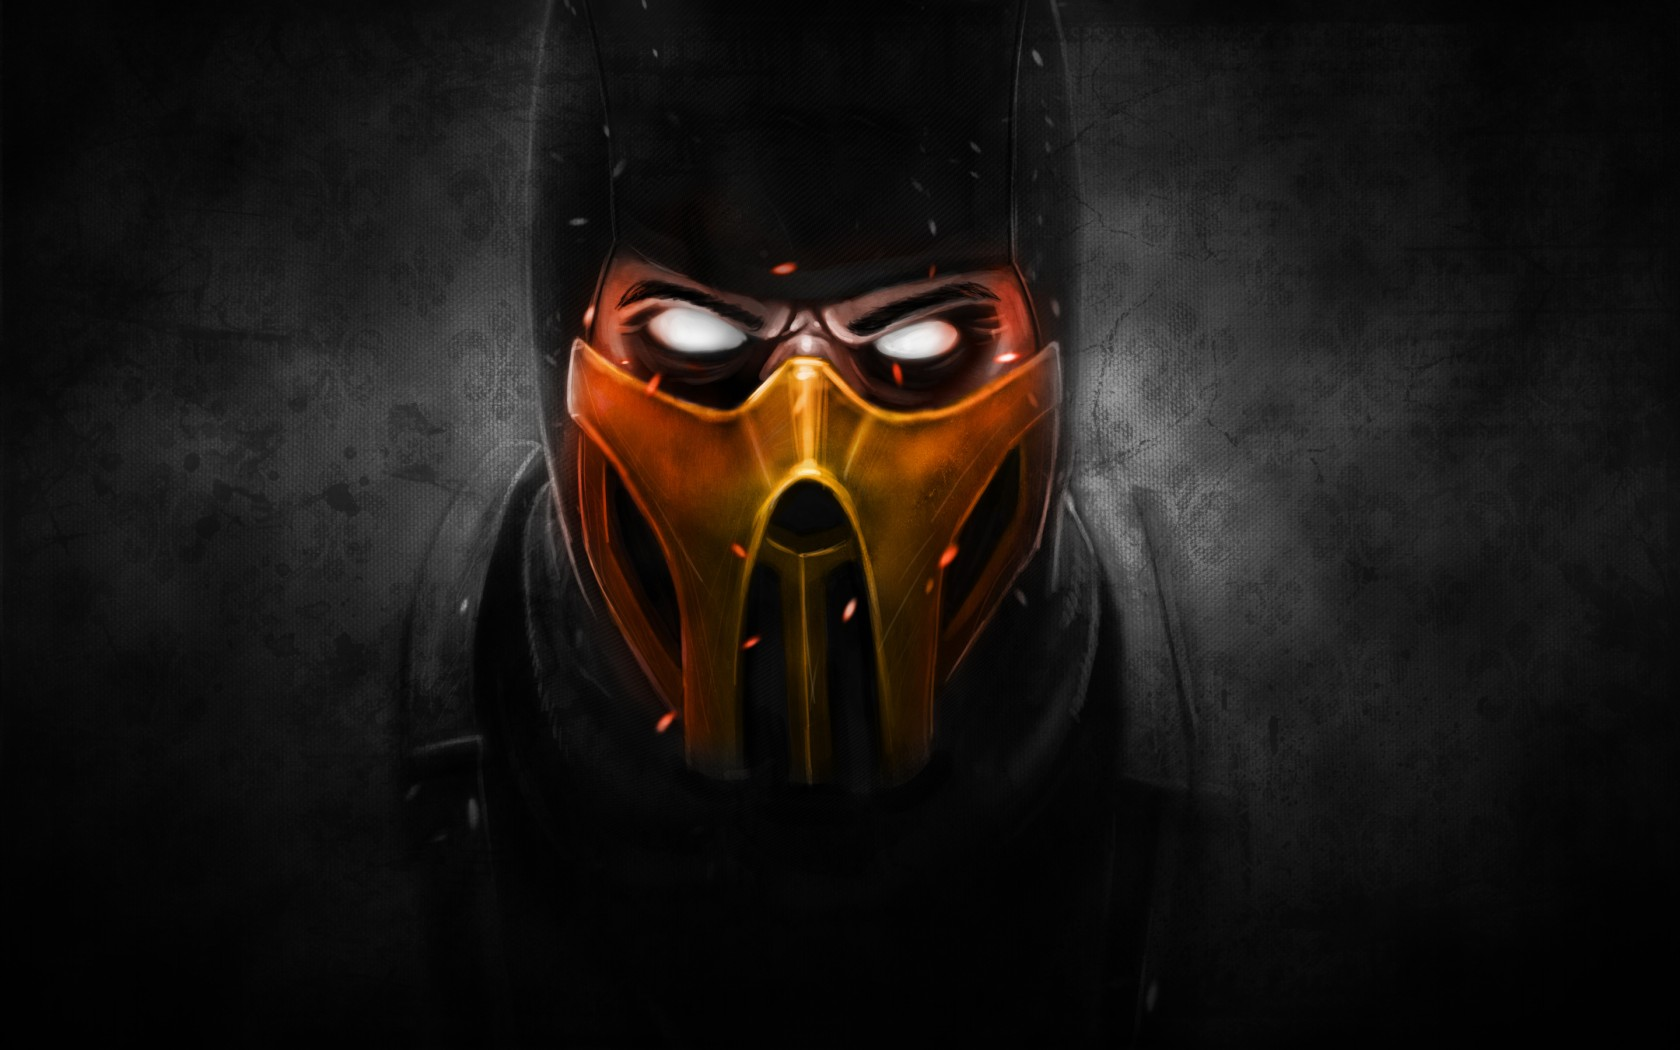 Mortal Kombat wallpaper Noob Saibot 5